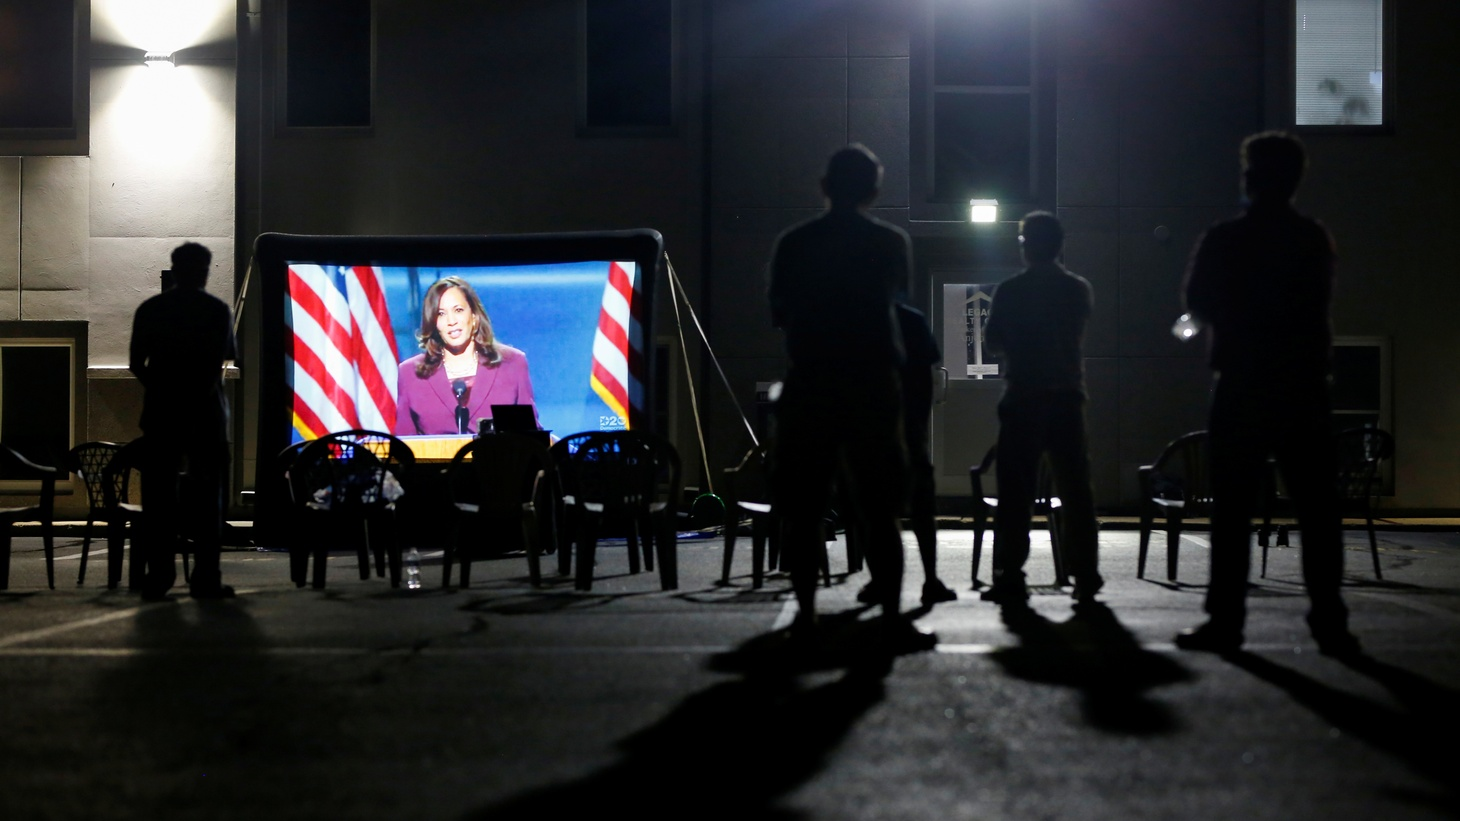 Members of a South Asian community in Edison, New Jersey watch vice presidential candidate Kamala Harris speak at the Democratic National Convention. The DNC was a virtual event due to the coronavirus outbreak. August 19, 2020.